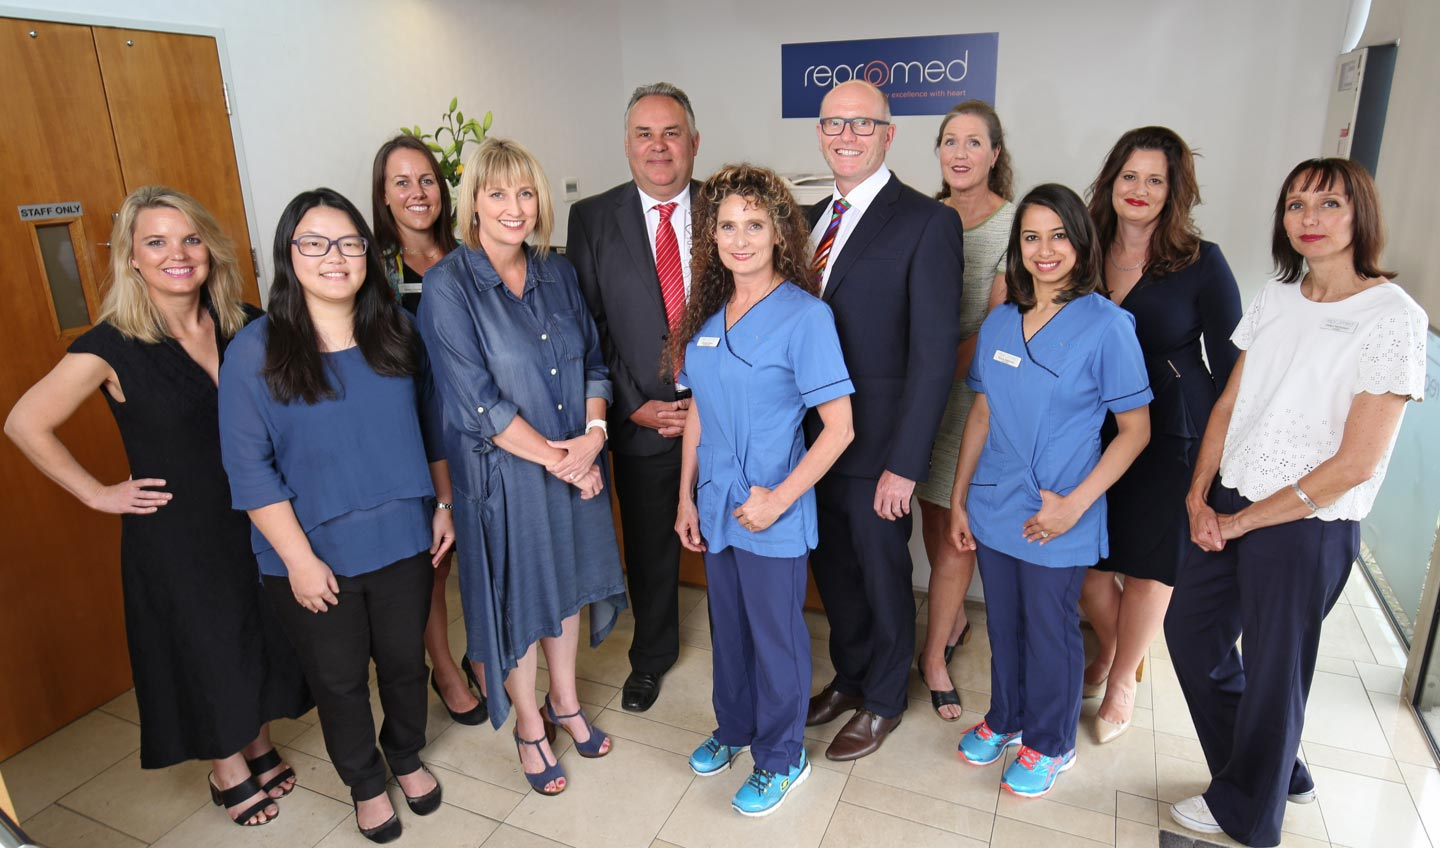 Repromed Staff - Fertility Specialists